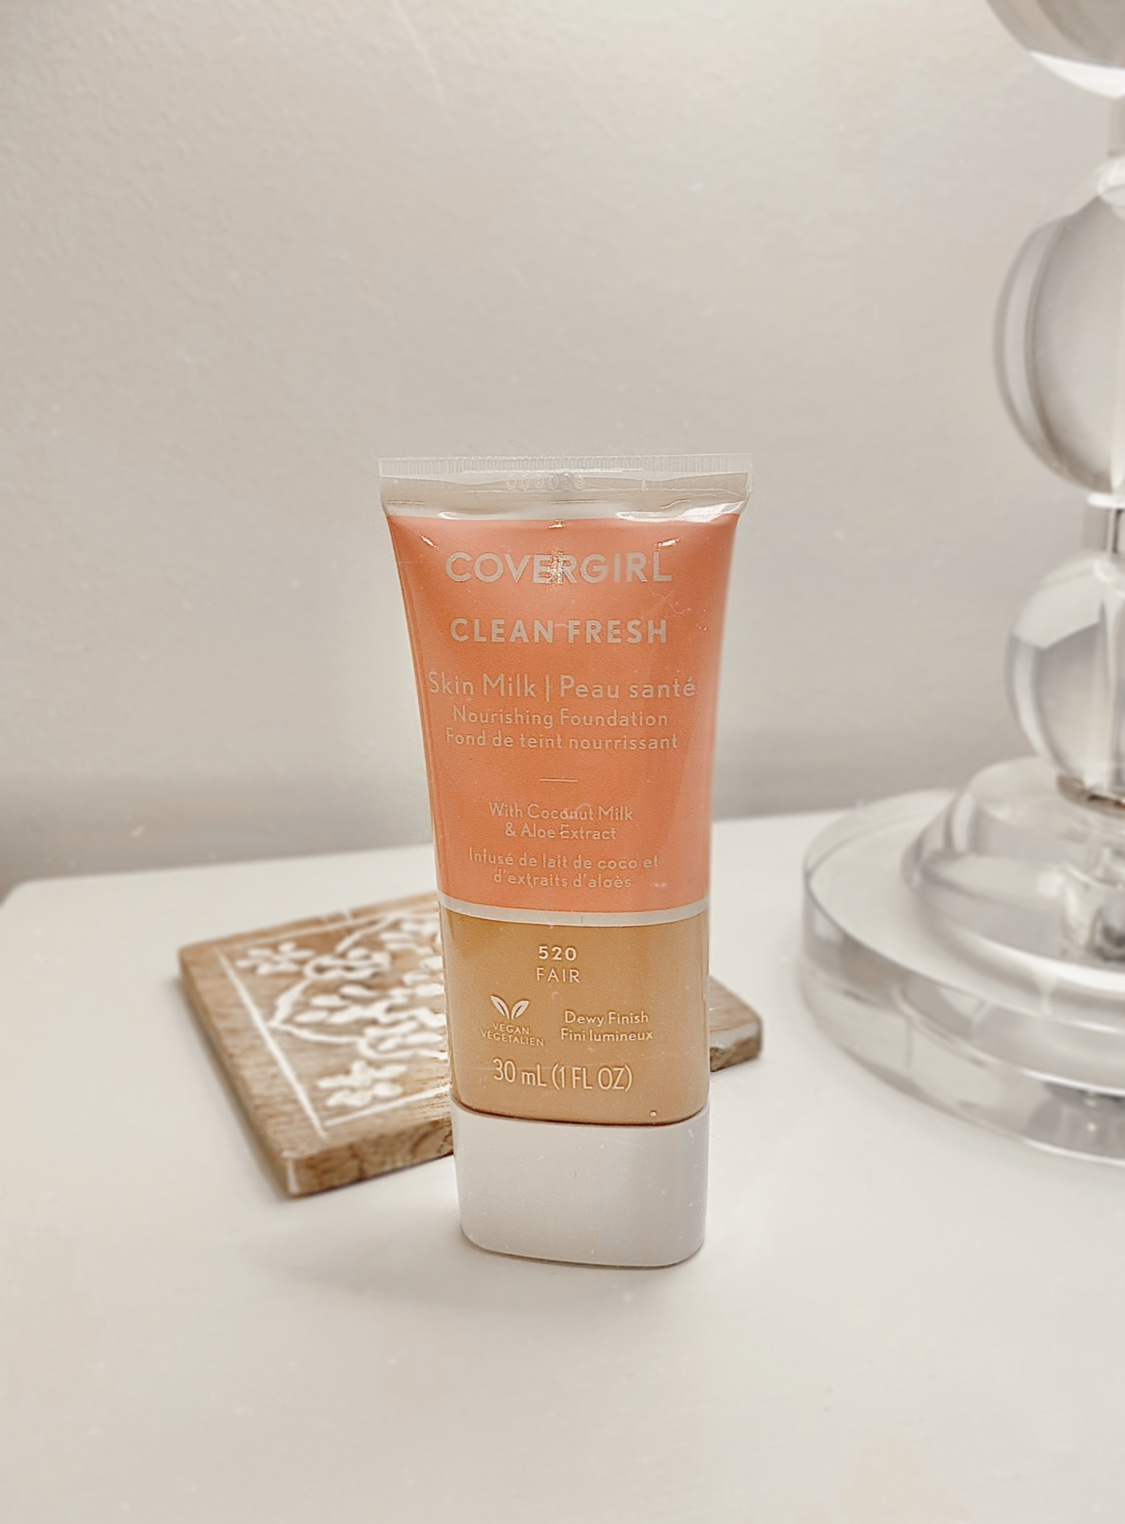 CoverGirl Clean Fresh Skin Milk Foundation Review by Jessica Linn